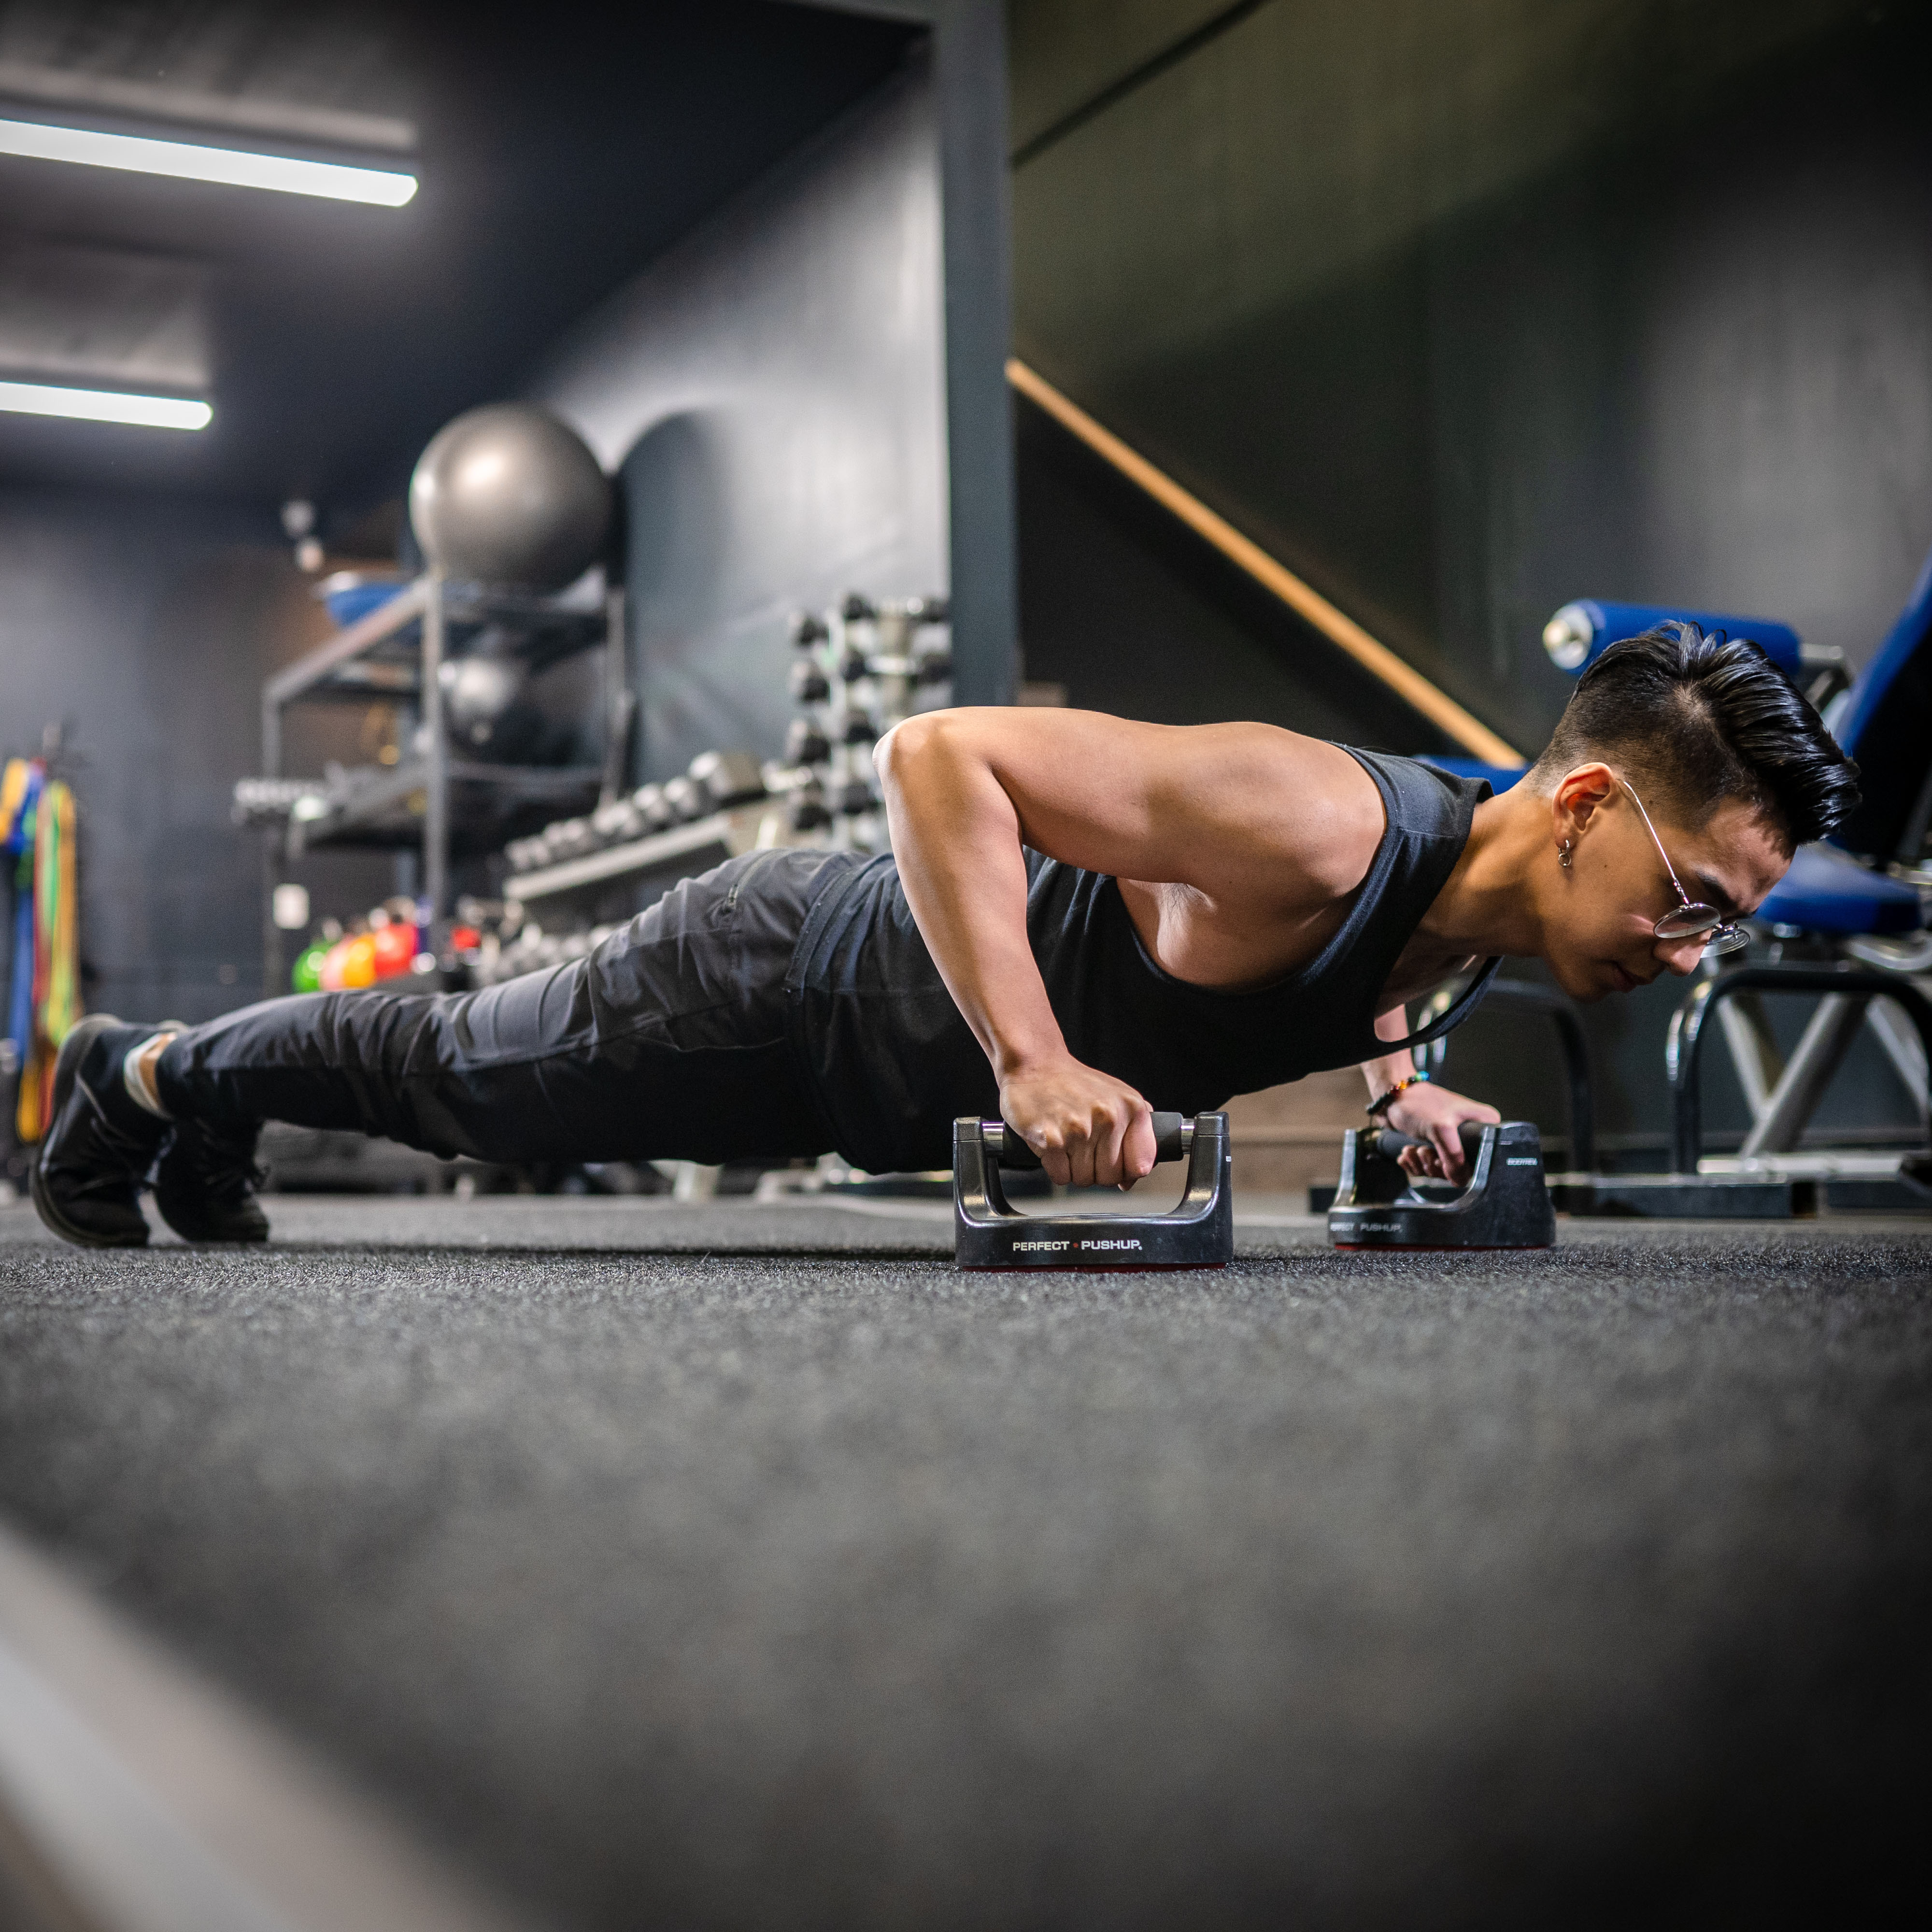 In this post we will be interviewing one of our personal trainers Harris Ng. He has been working in the fitness industry for the past 3 years. We are going to ask him questions related to his fitness lifestyle, his exercise routines and what it takes to go from a beginner level in fitness to an intermediate level. How to overcome sticking points and what you need to do to get past a plateau. Let us get started.